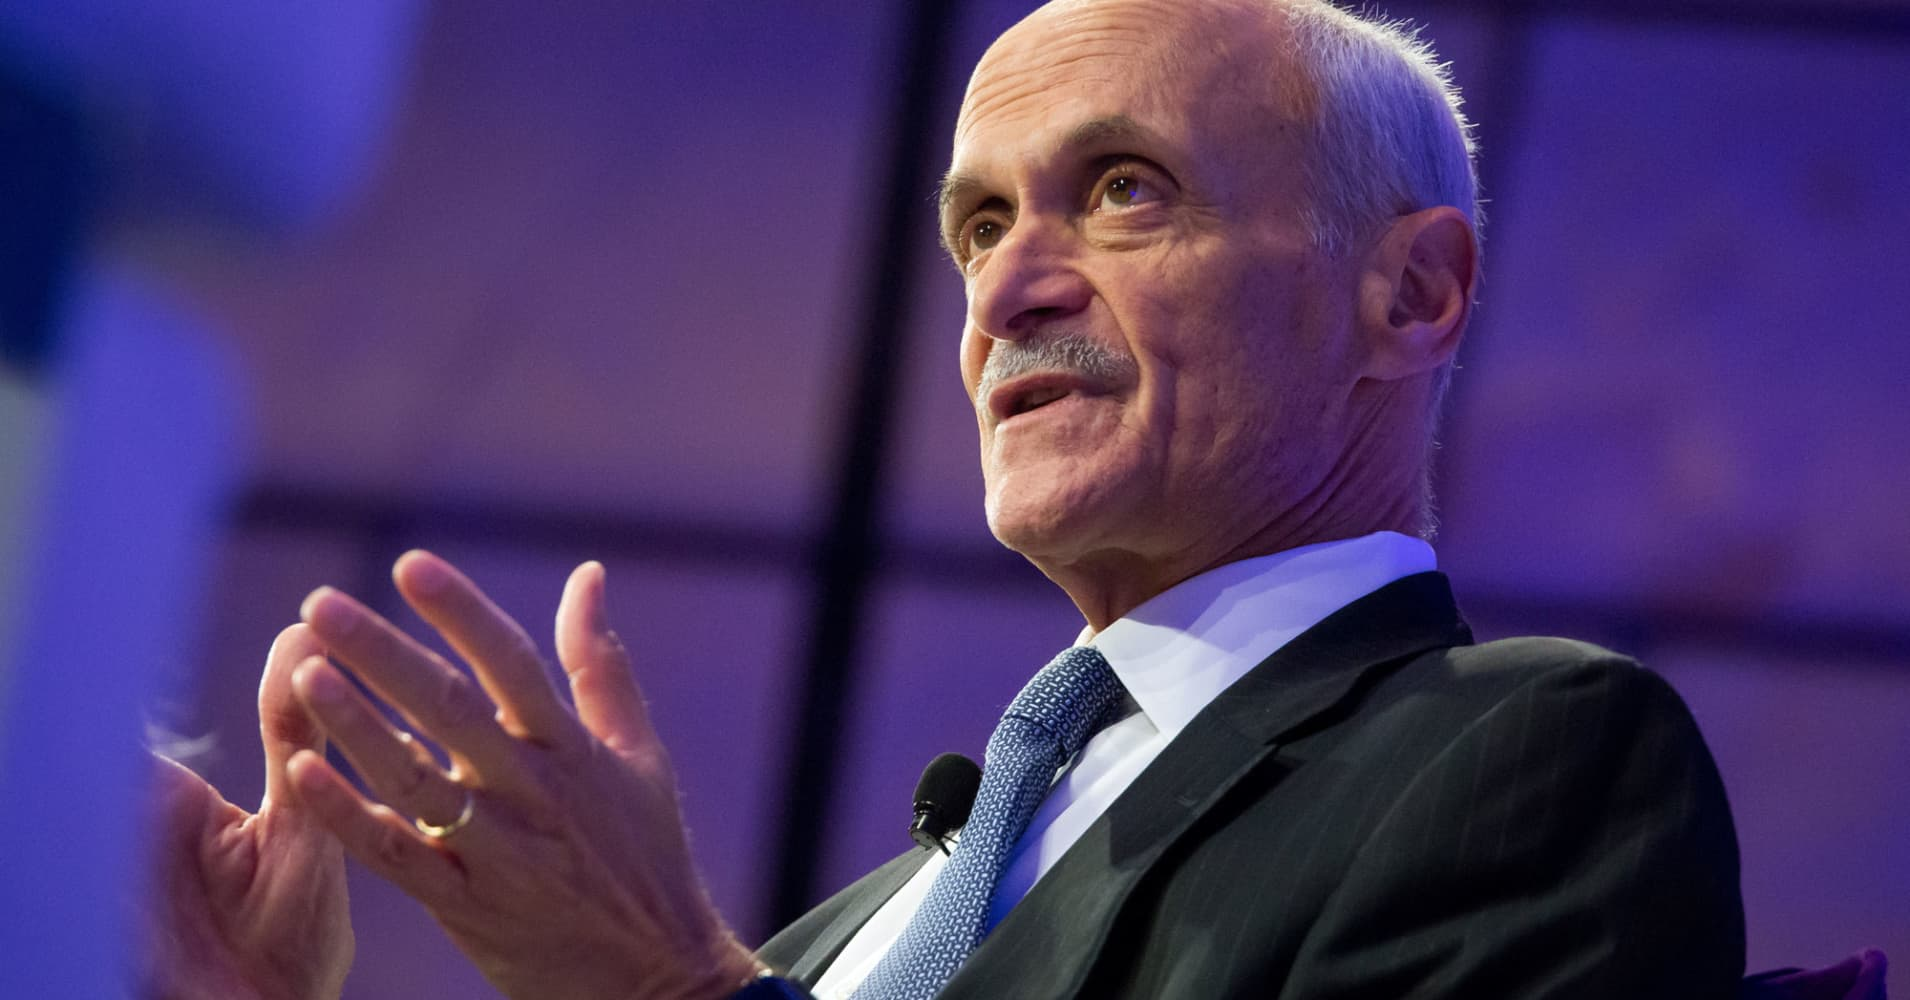 Cyberthreats require a global response, said ex-Homeland Security head Chertoff